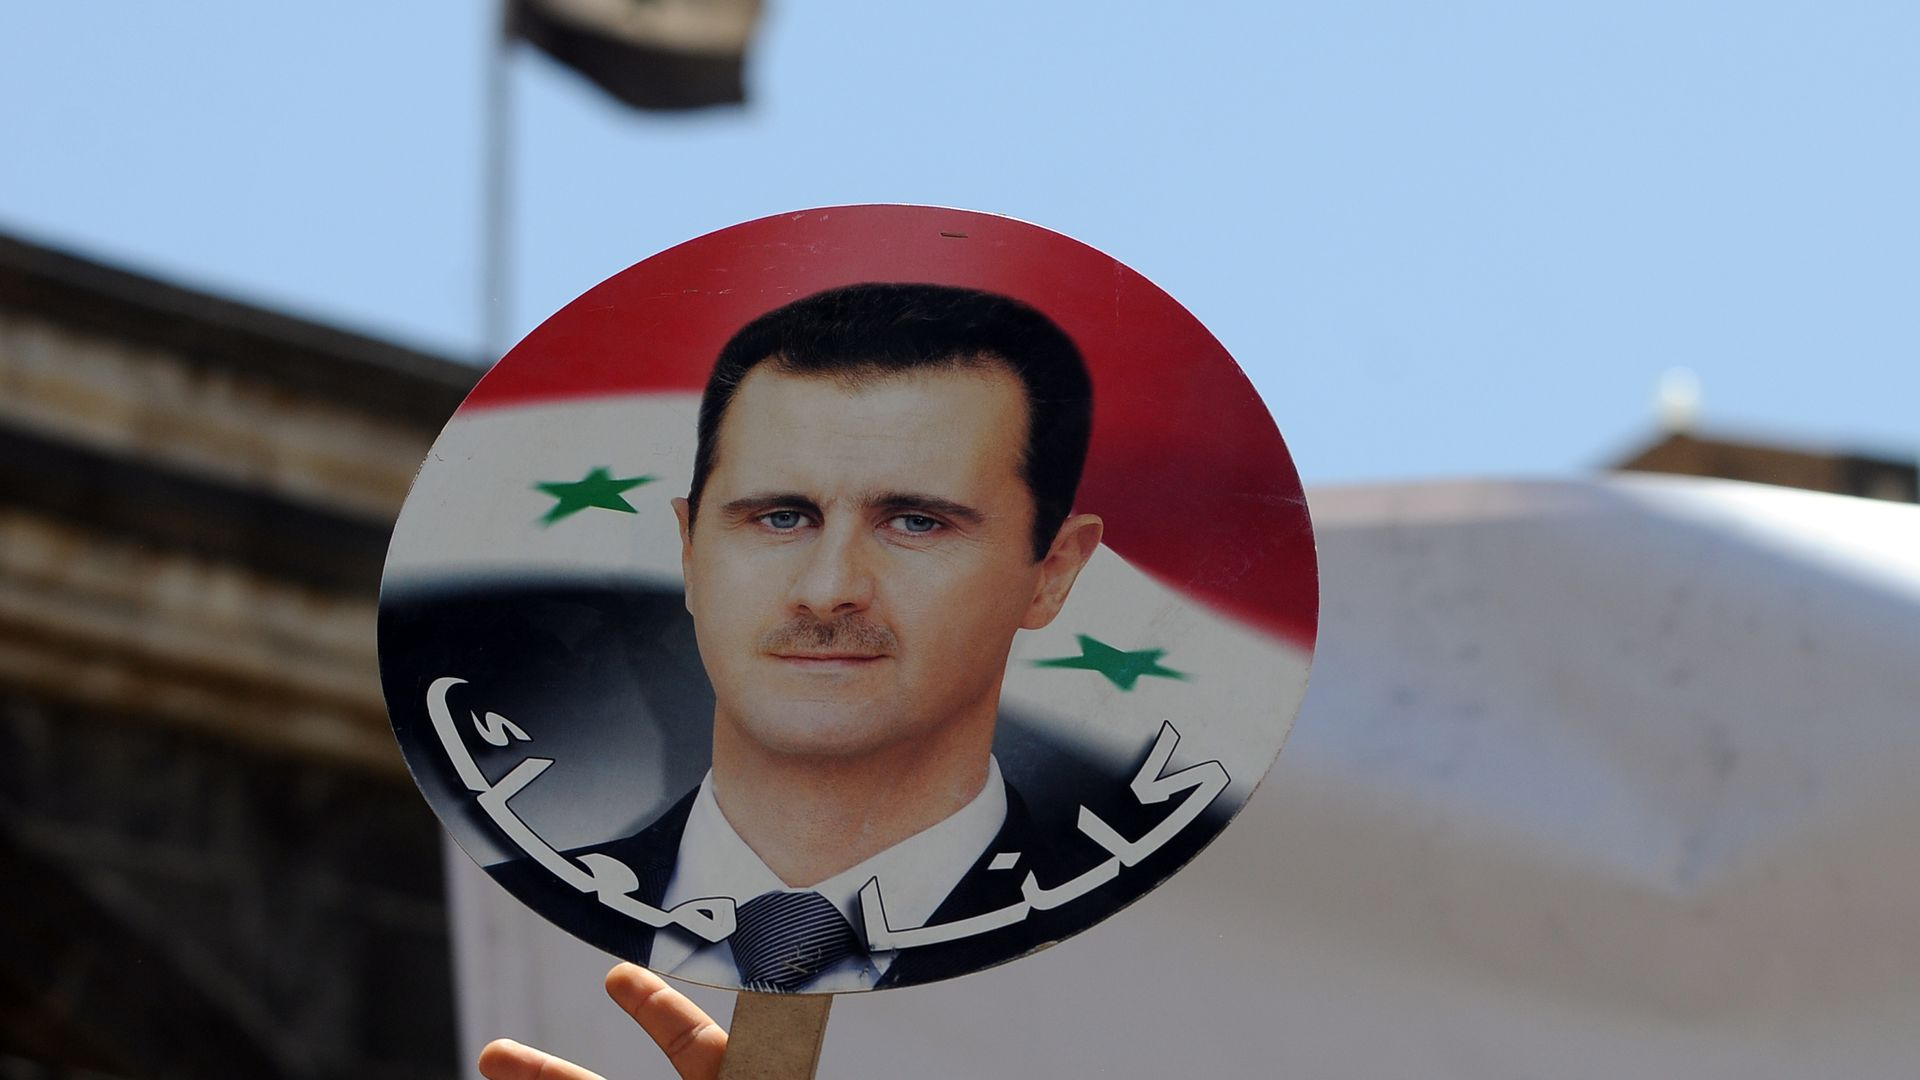 A sign of Syrian President Bashar al-Assad's face.